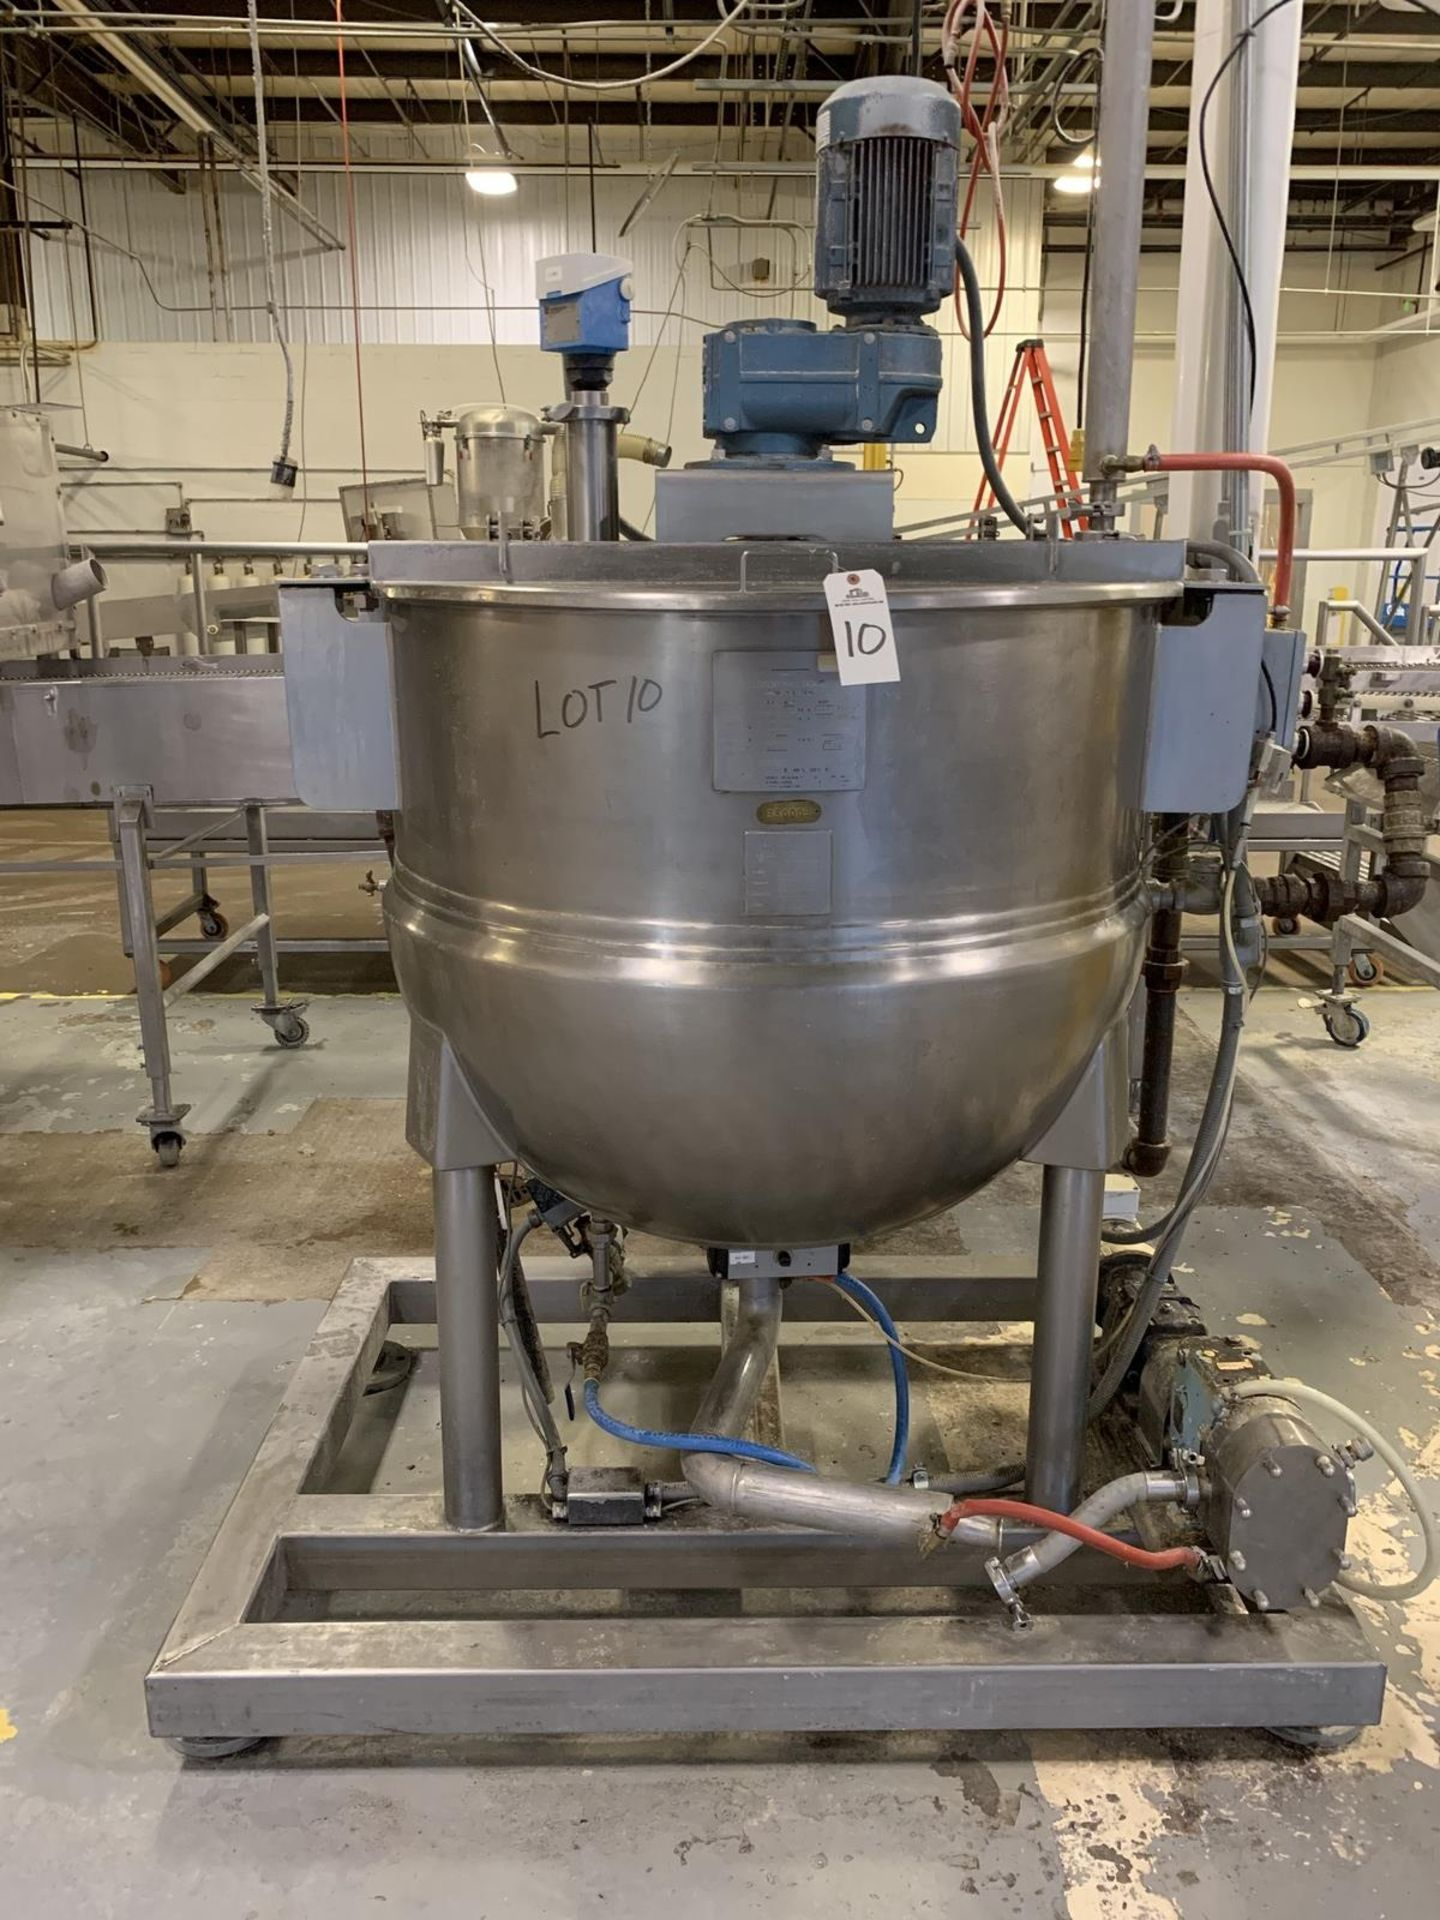 Lot 10 - 2003 Hamilton 150 Gallon Sweep Scrape Agitated Kettle, 125 PSI Jacket with Onboard | Rig Fee: 400